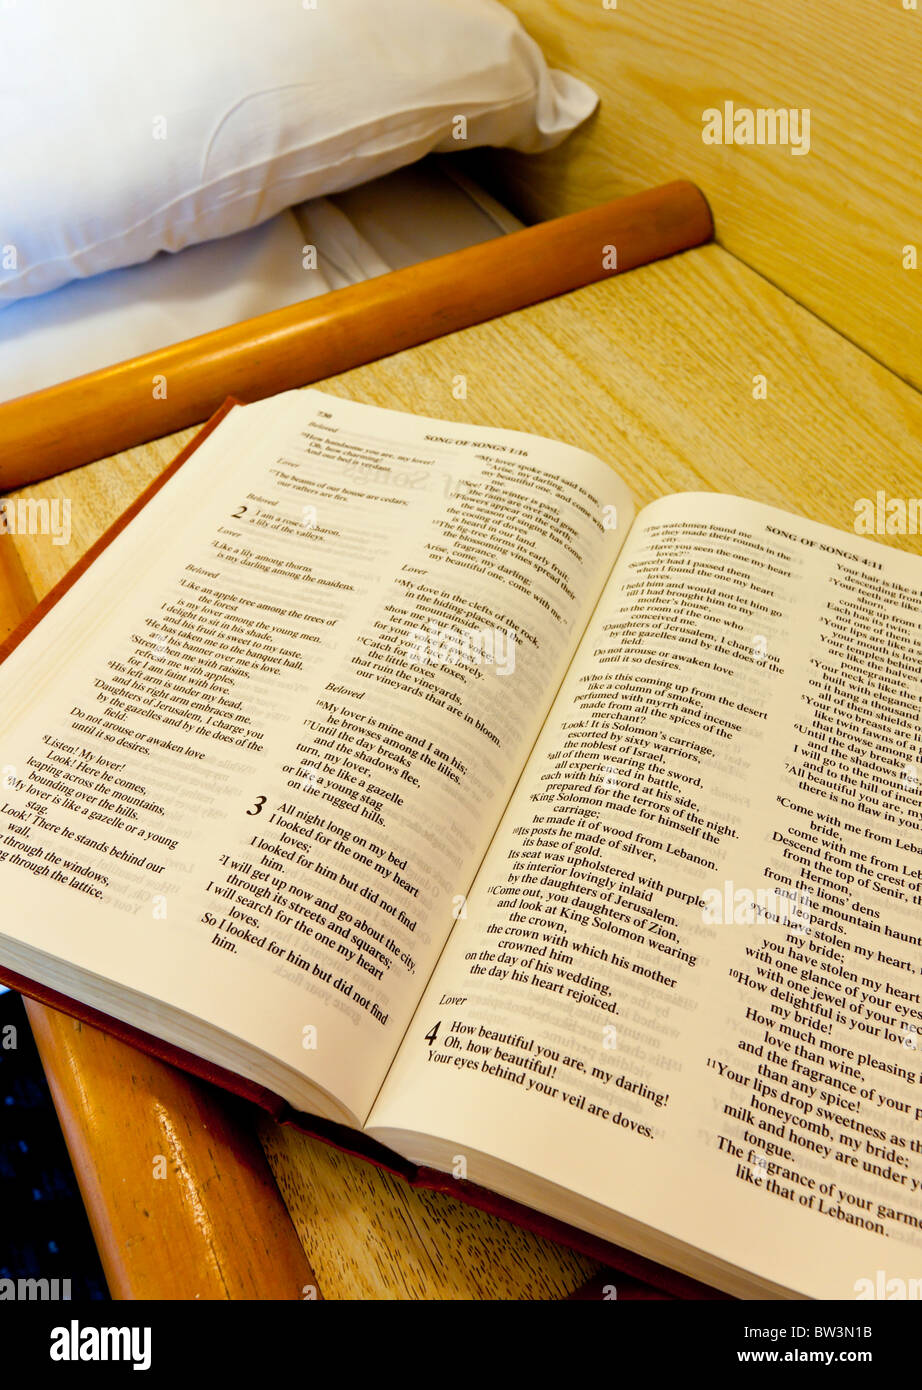 Gideon's Bible placed in a hotel room by Gideons International an evangelical Christian organization founded - Stock Image